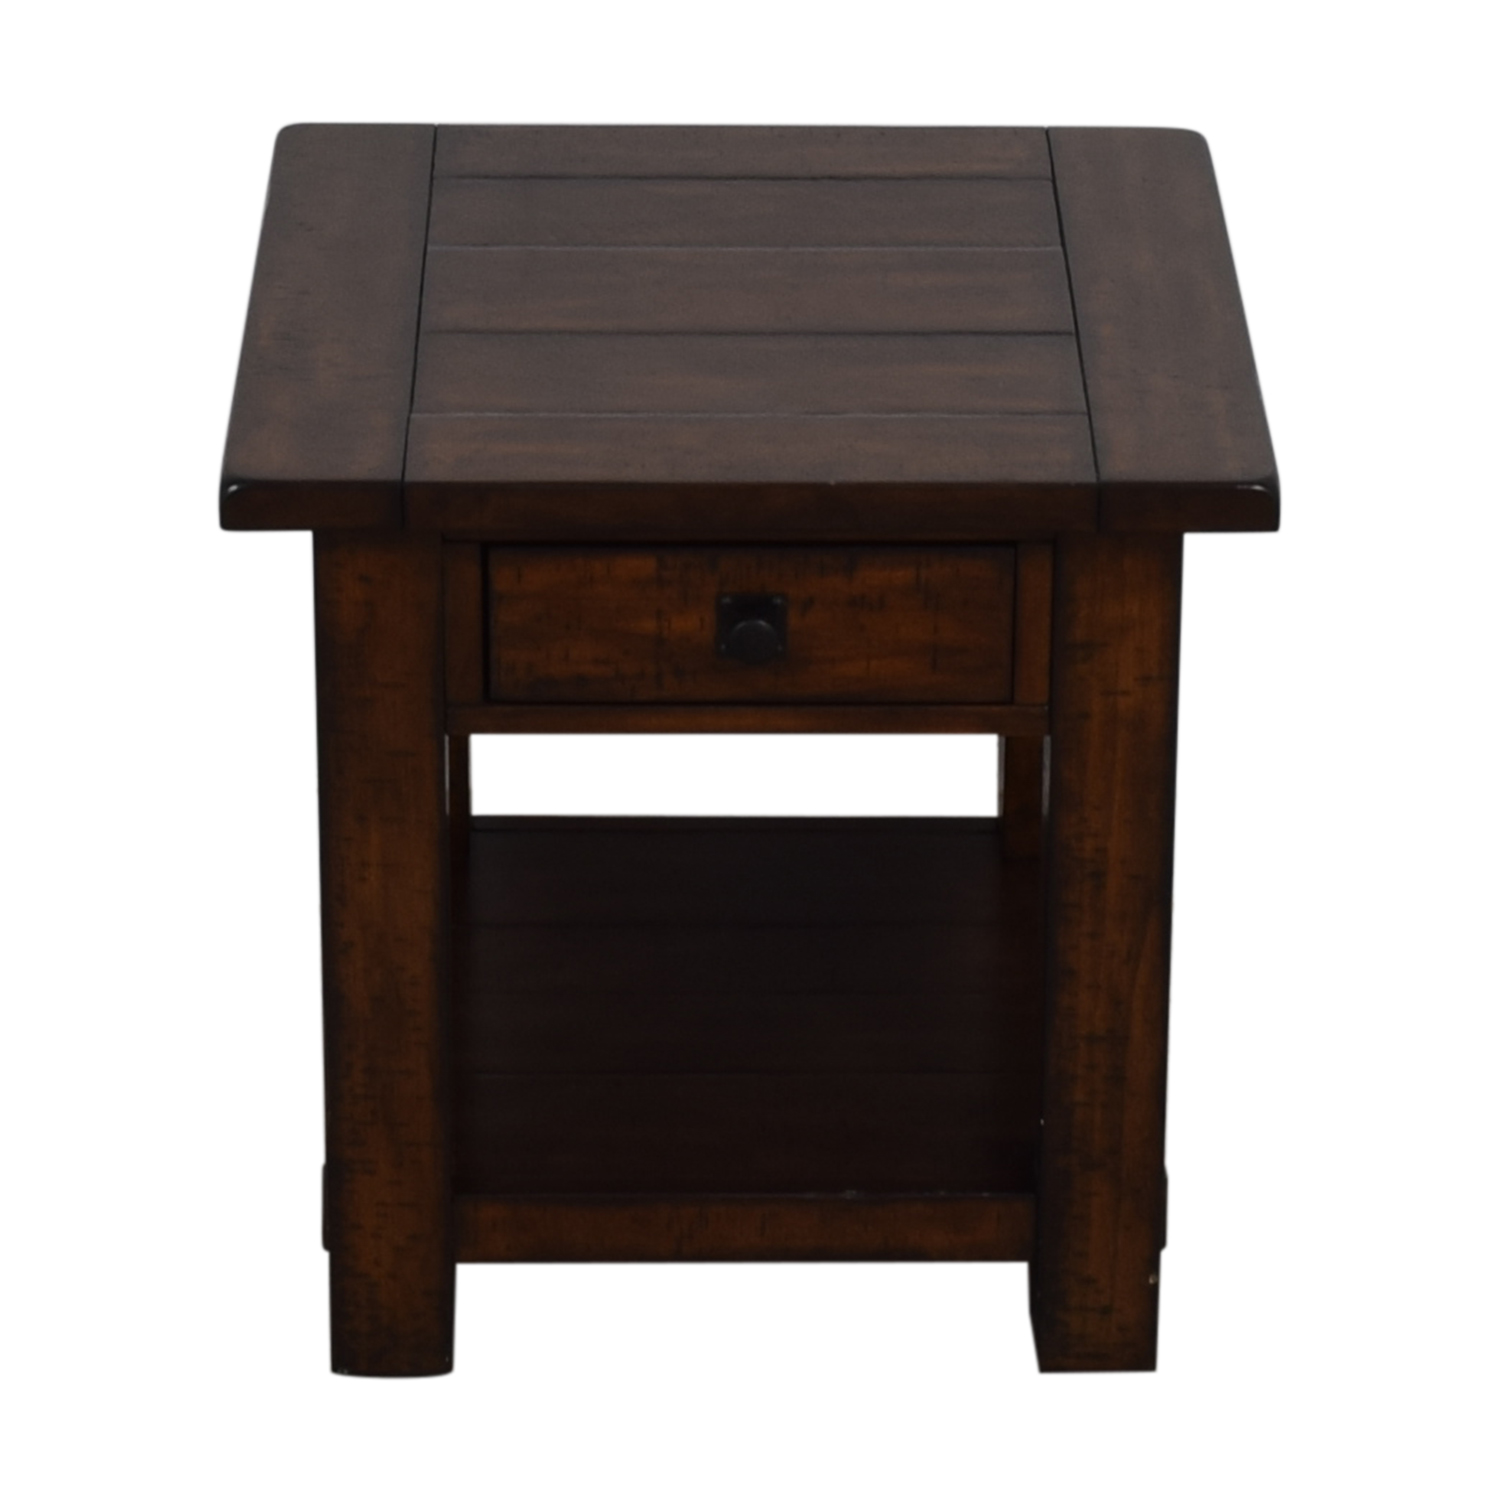 Pottery Barn Pottery Barn Benchwright Single Drawer Side Table price